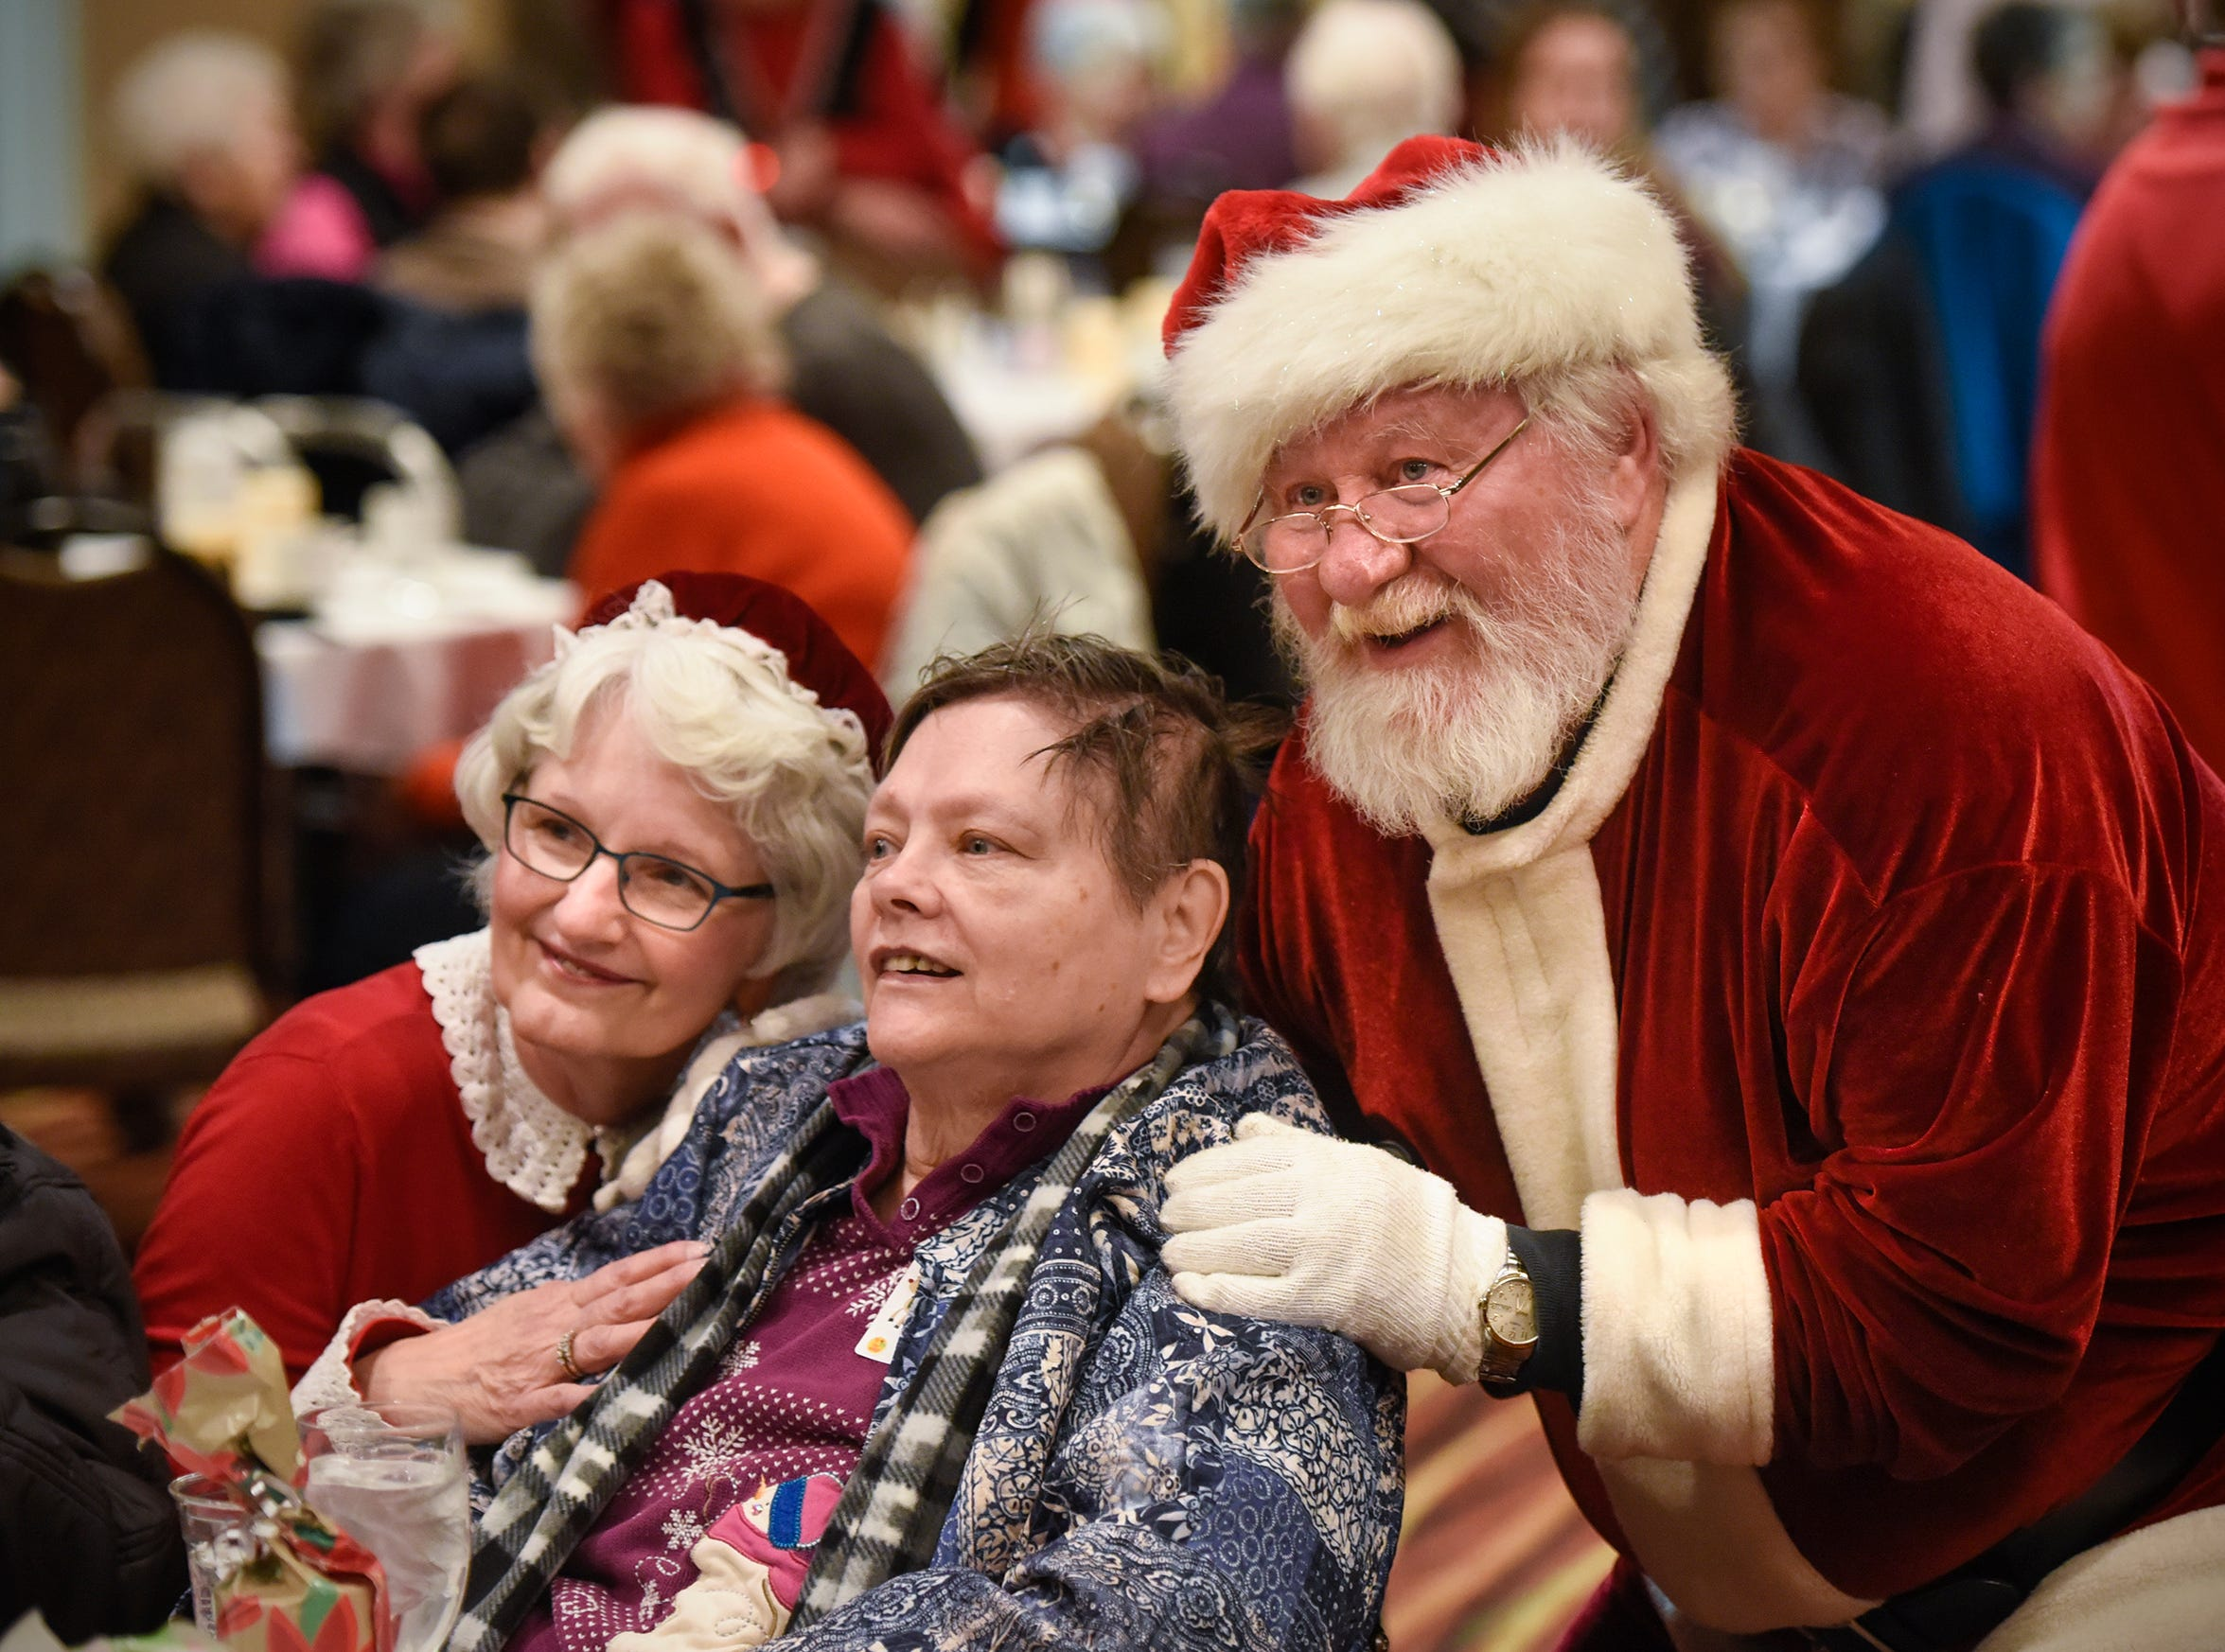 Santa Jerry Stangler and Mrs. Santa Evelyn Budde pose for photographs with people during the Dinner with Santa event Monday, Dec. 17, in St. Cloud.